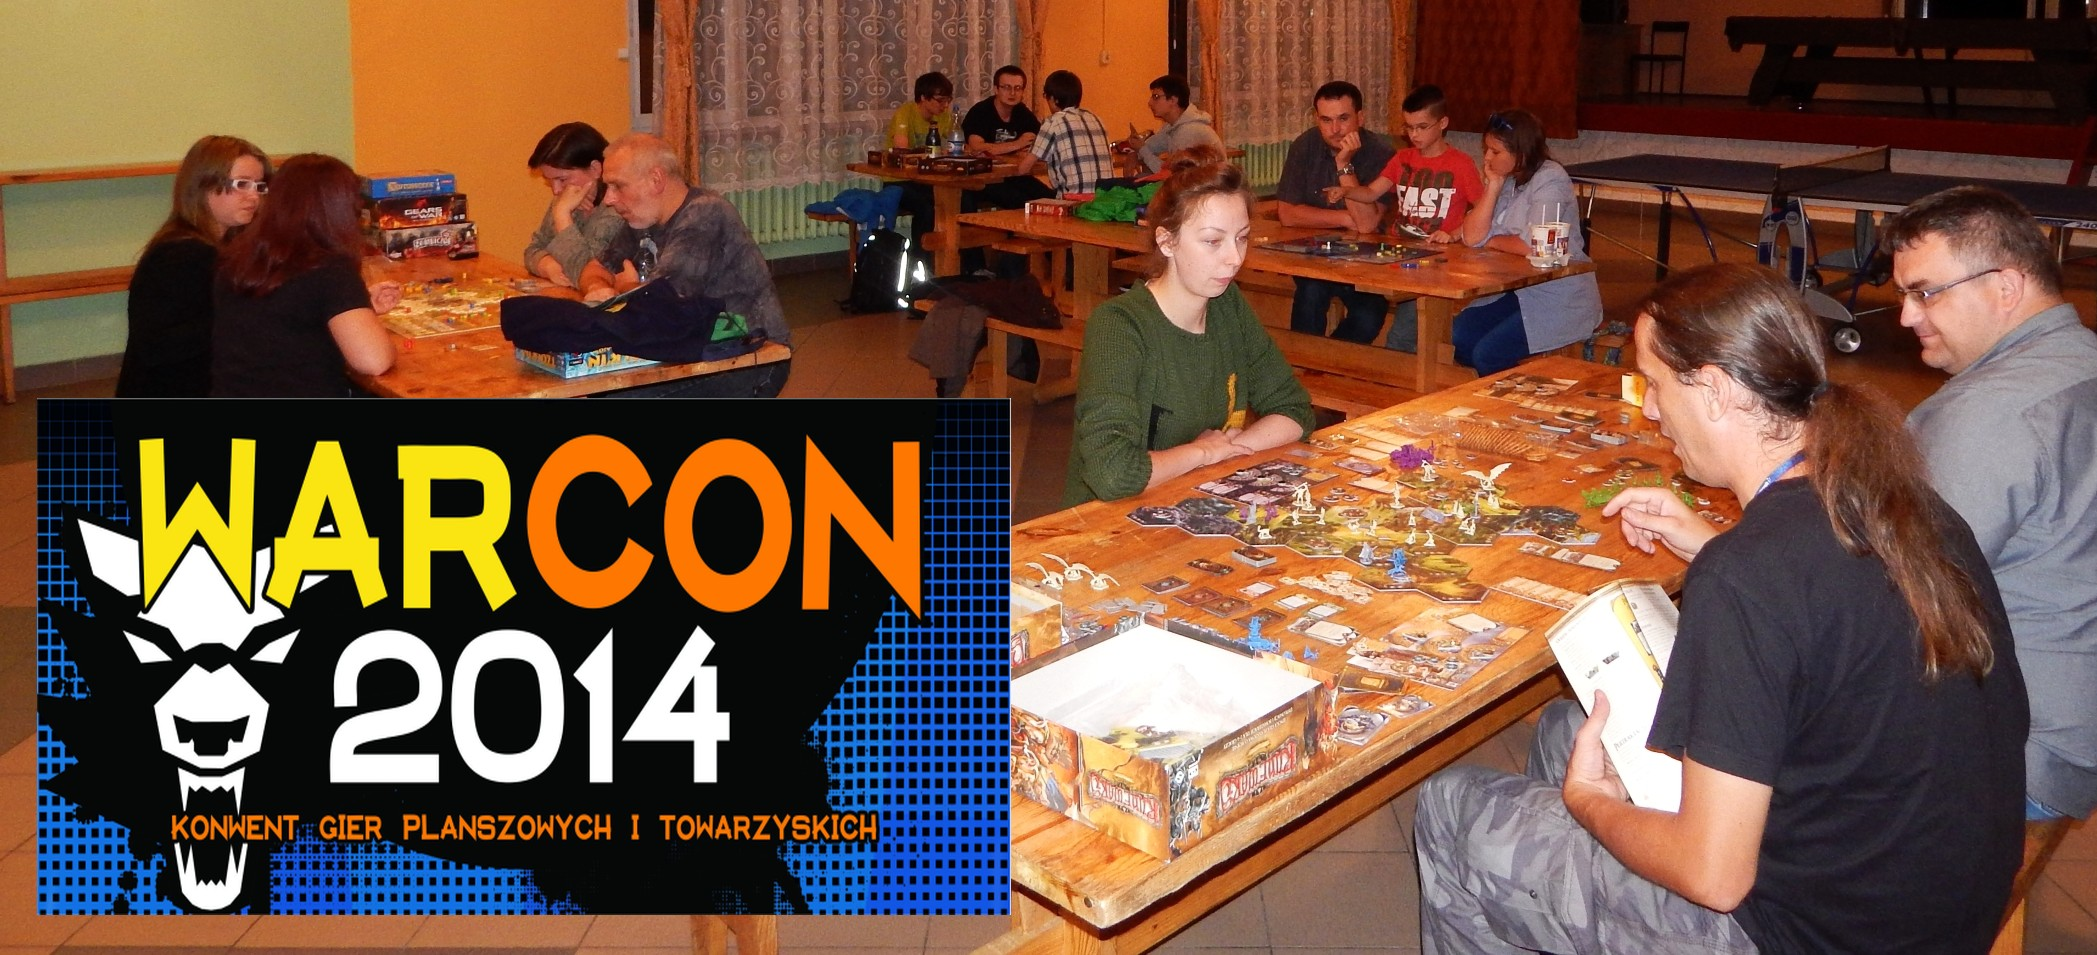 Warcon 2014